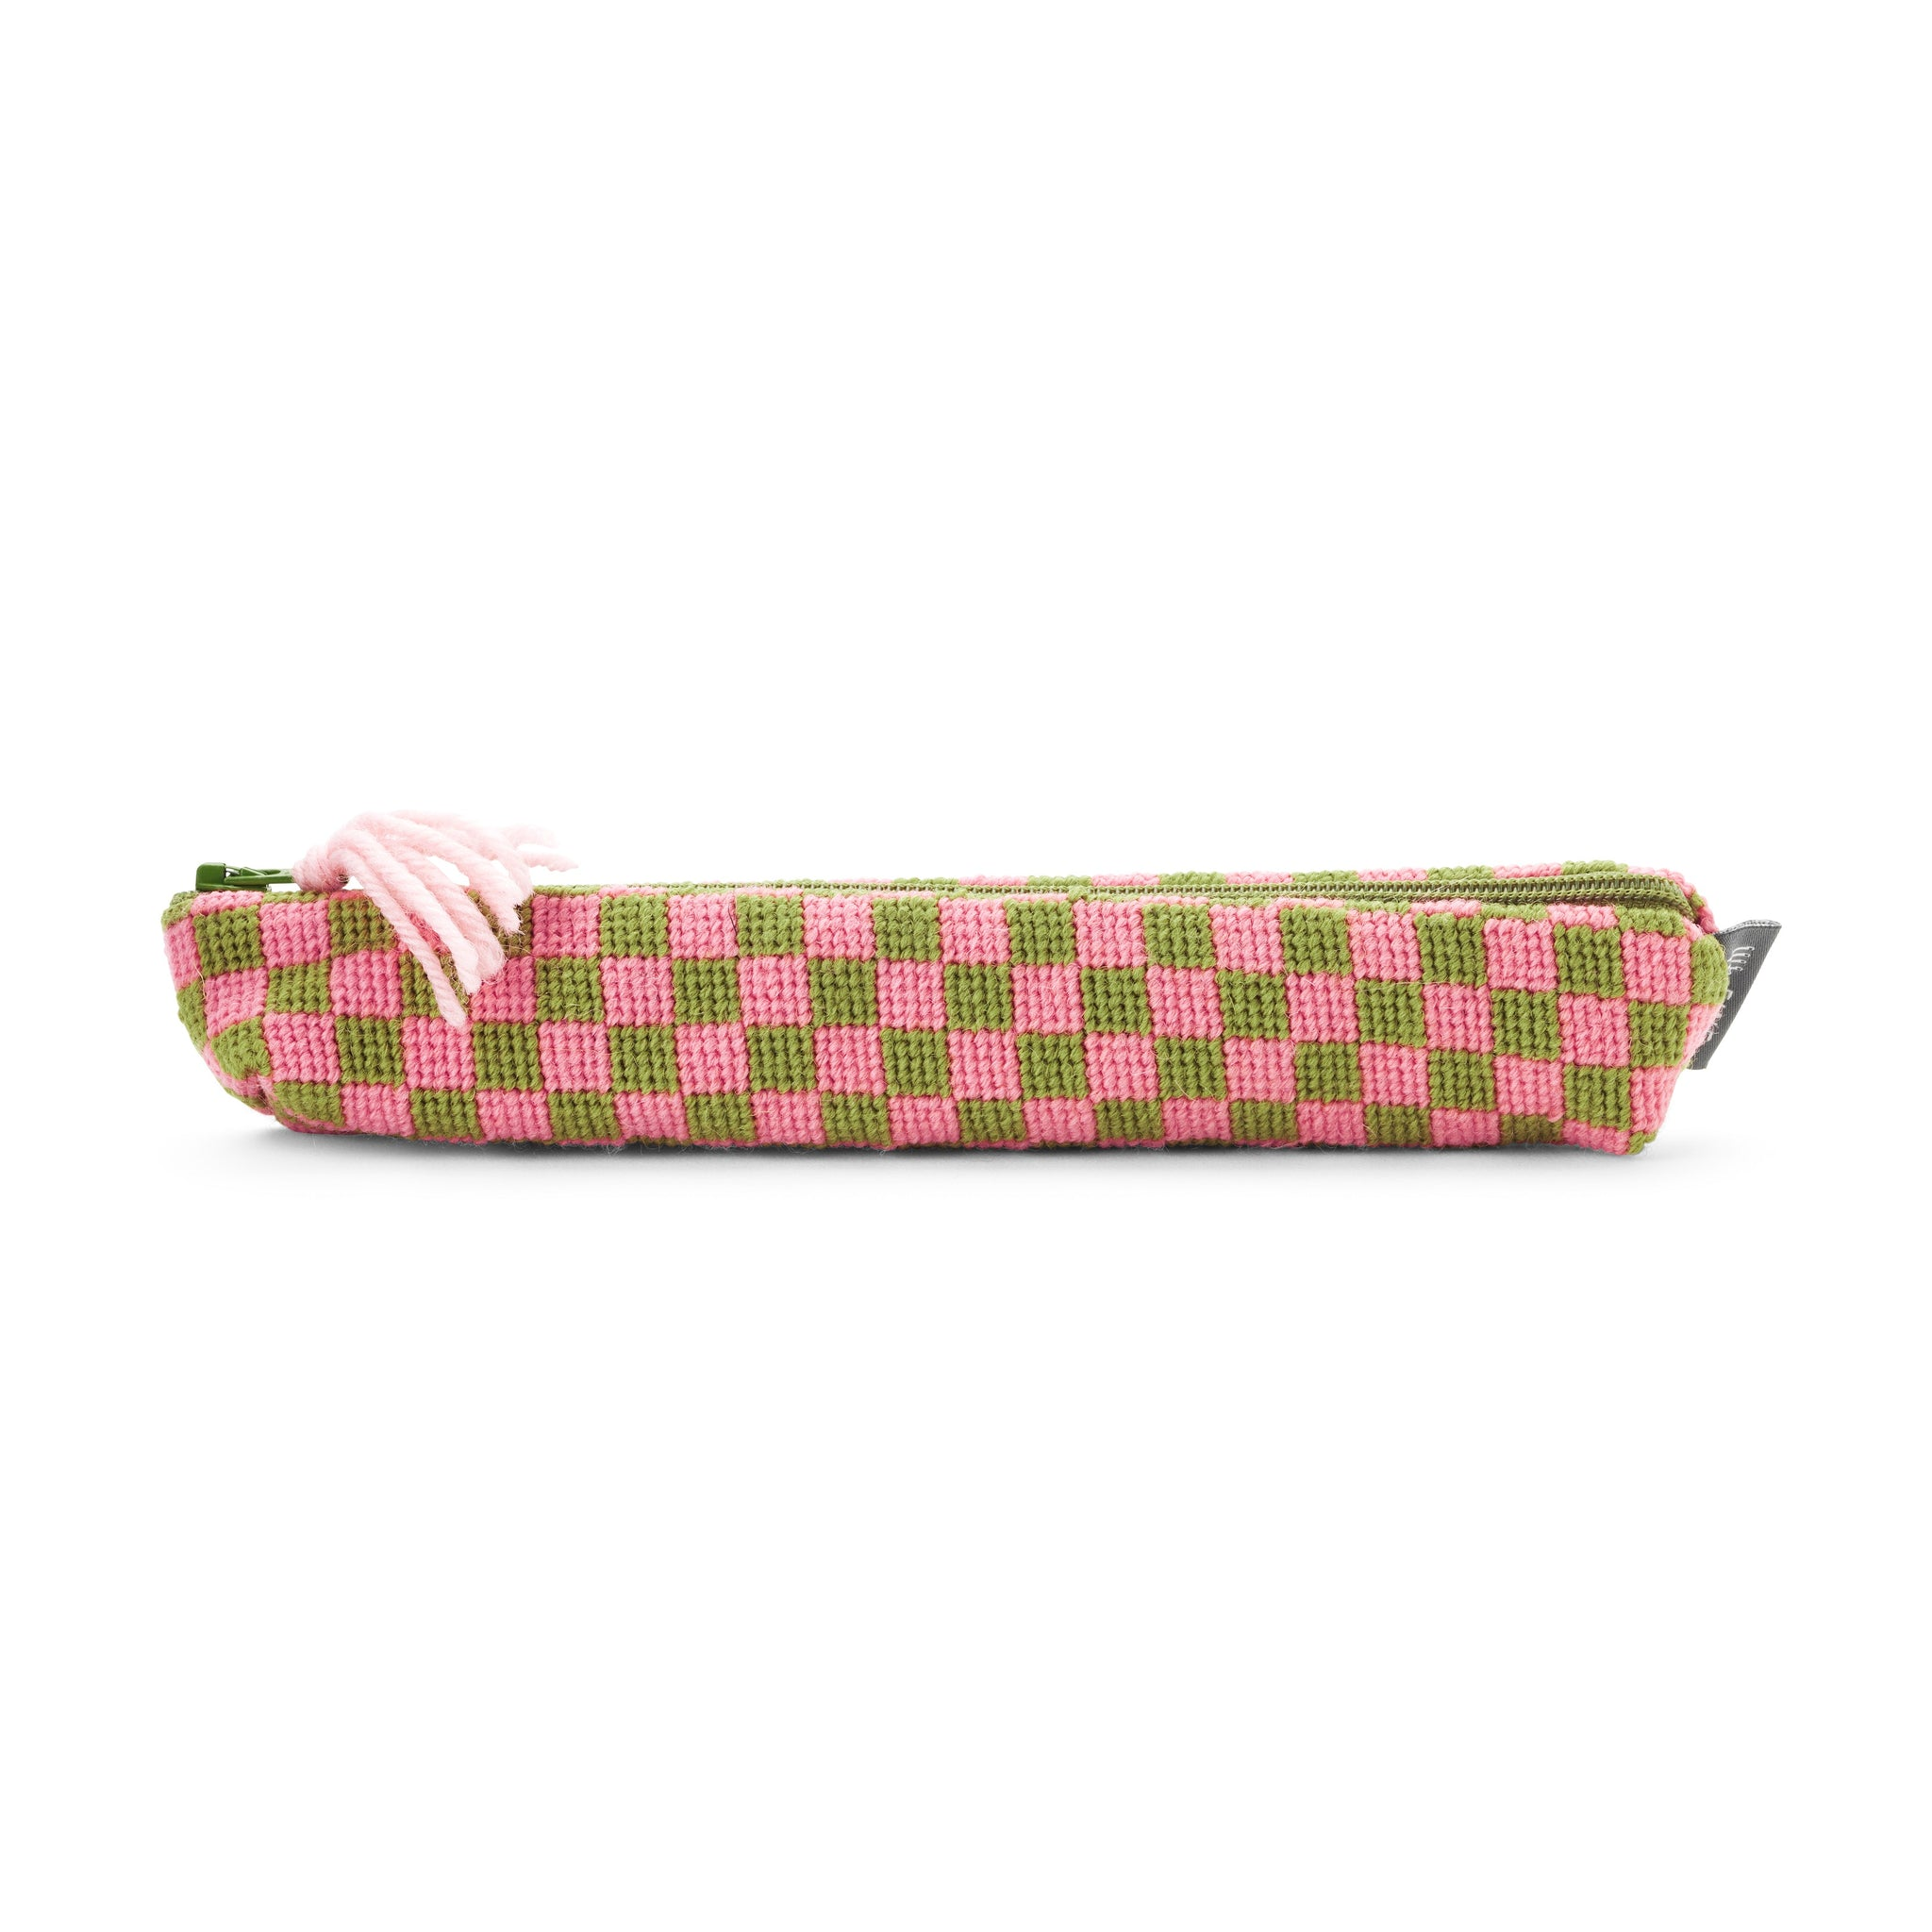 Sissinghurst Chequerboard Needlepoint Pencil Case Pink and Green Cath Kidston for Fine Cell Work